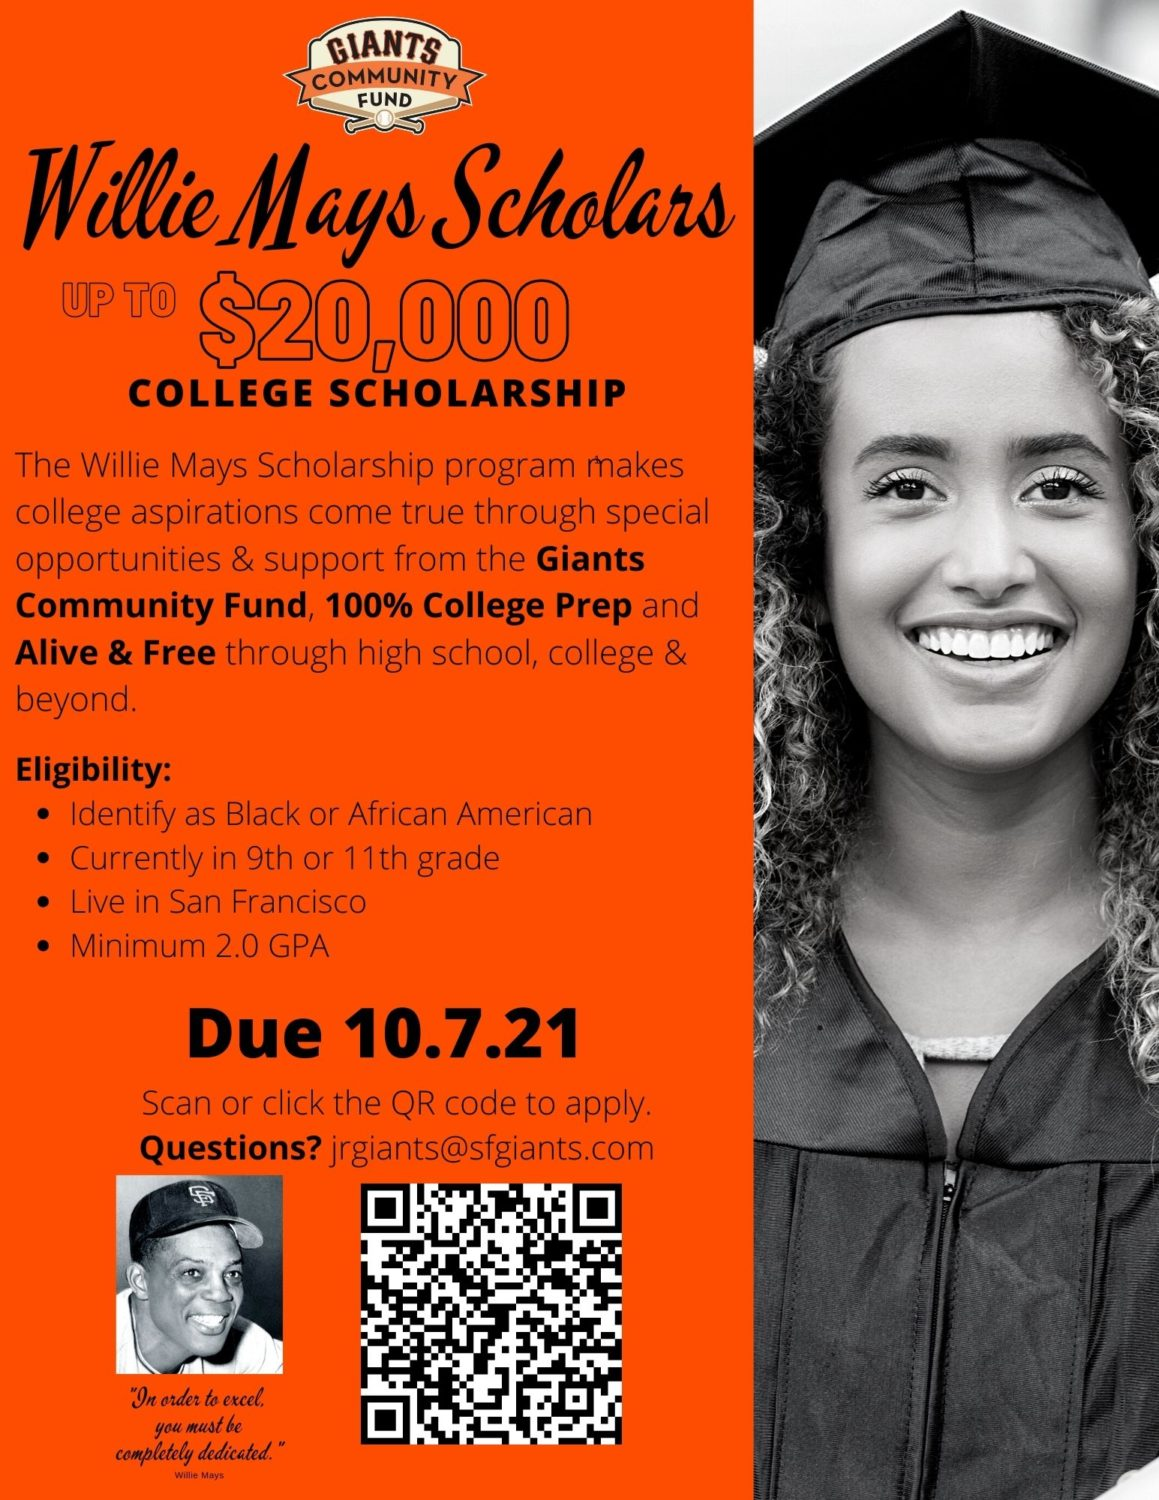 Willie-Mays-Scholarship-2021-with-SF-Giants, Daphne Young's eye on education: 'What's going on?', Local News & Views